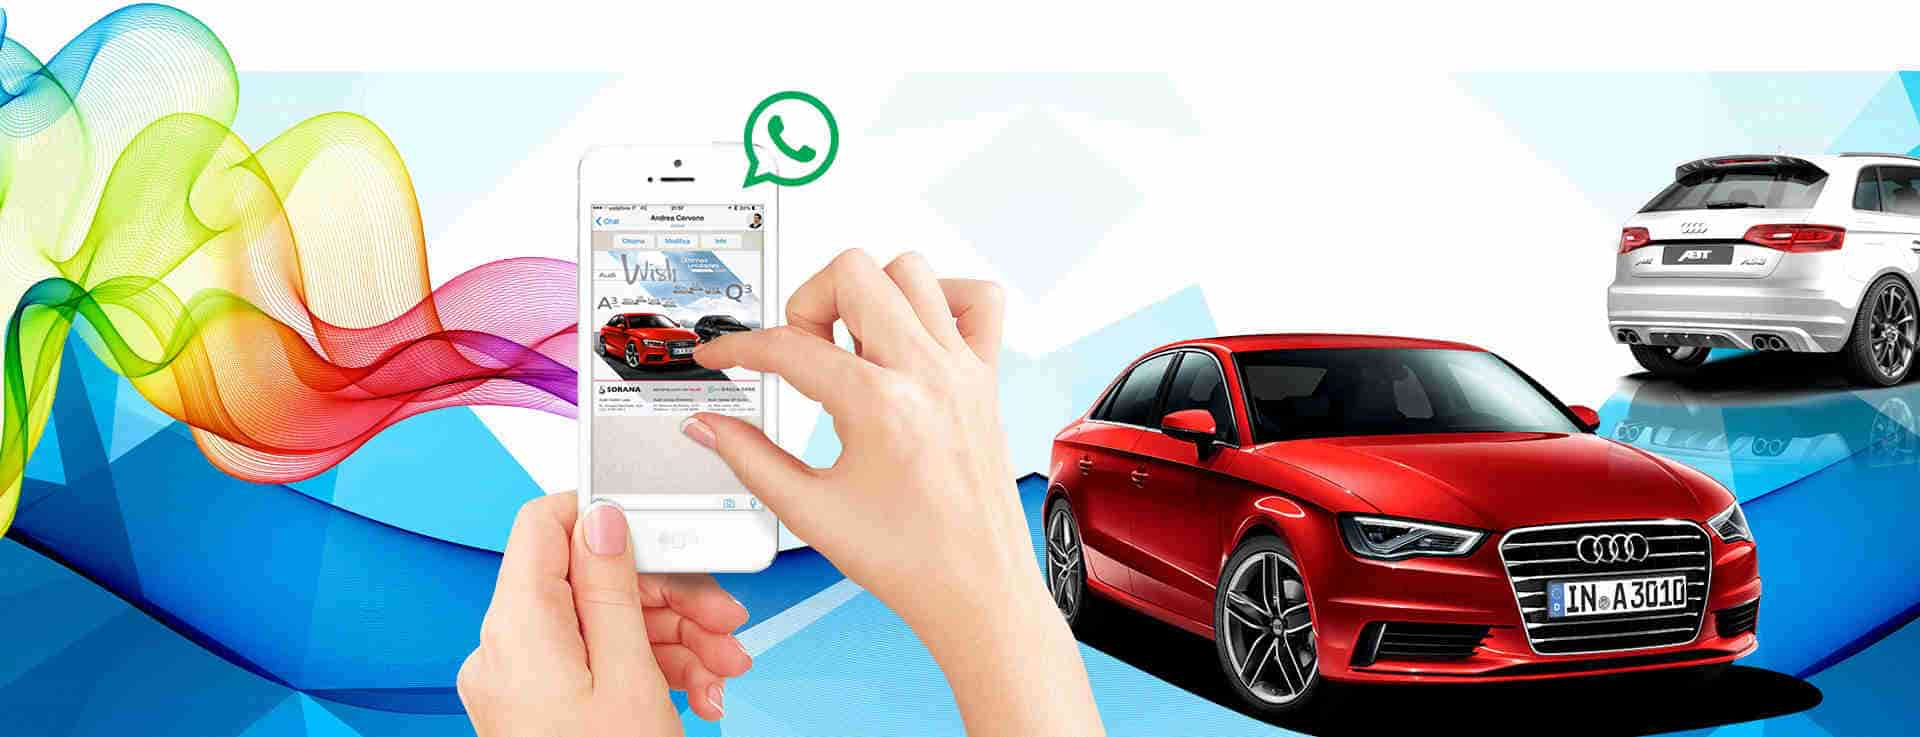 Whatsapp Marketing, Mobile Marketing, SMS Marketing